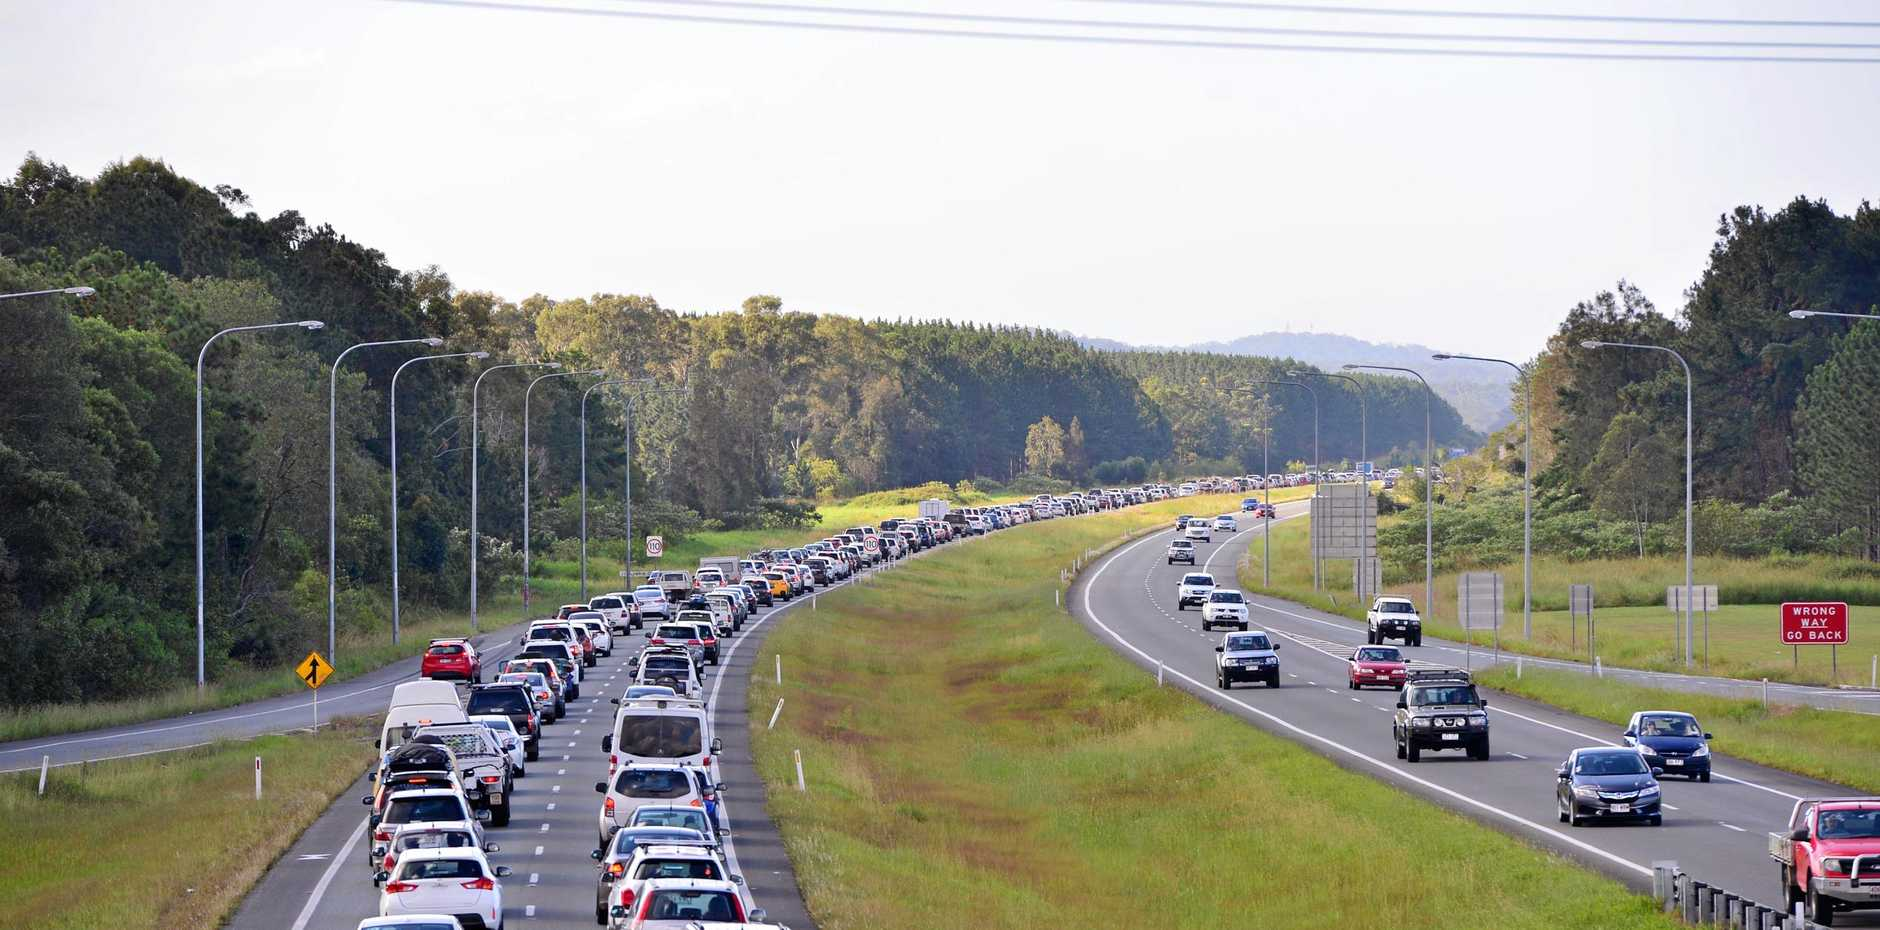 The RACQ has warned Easter traffic will be even worse than usual, with roadworks and the Commonwealth Games putting extra pressure on the Bruce Highway.